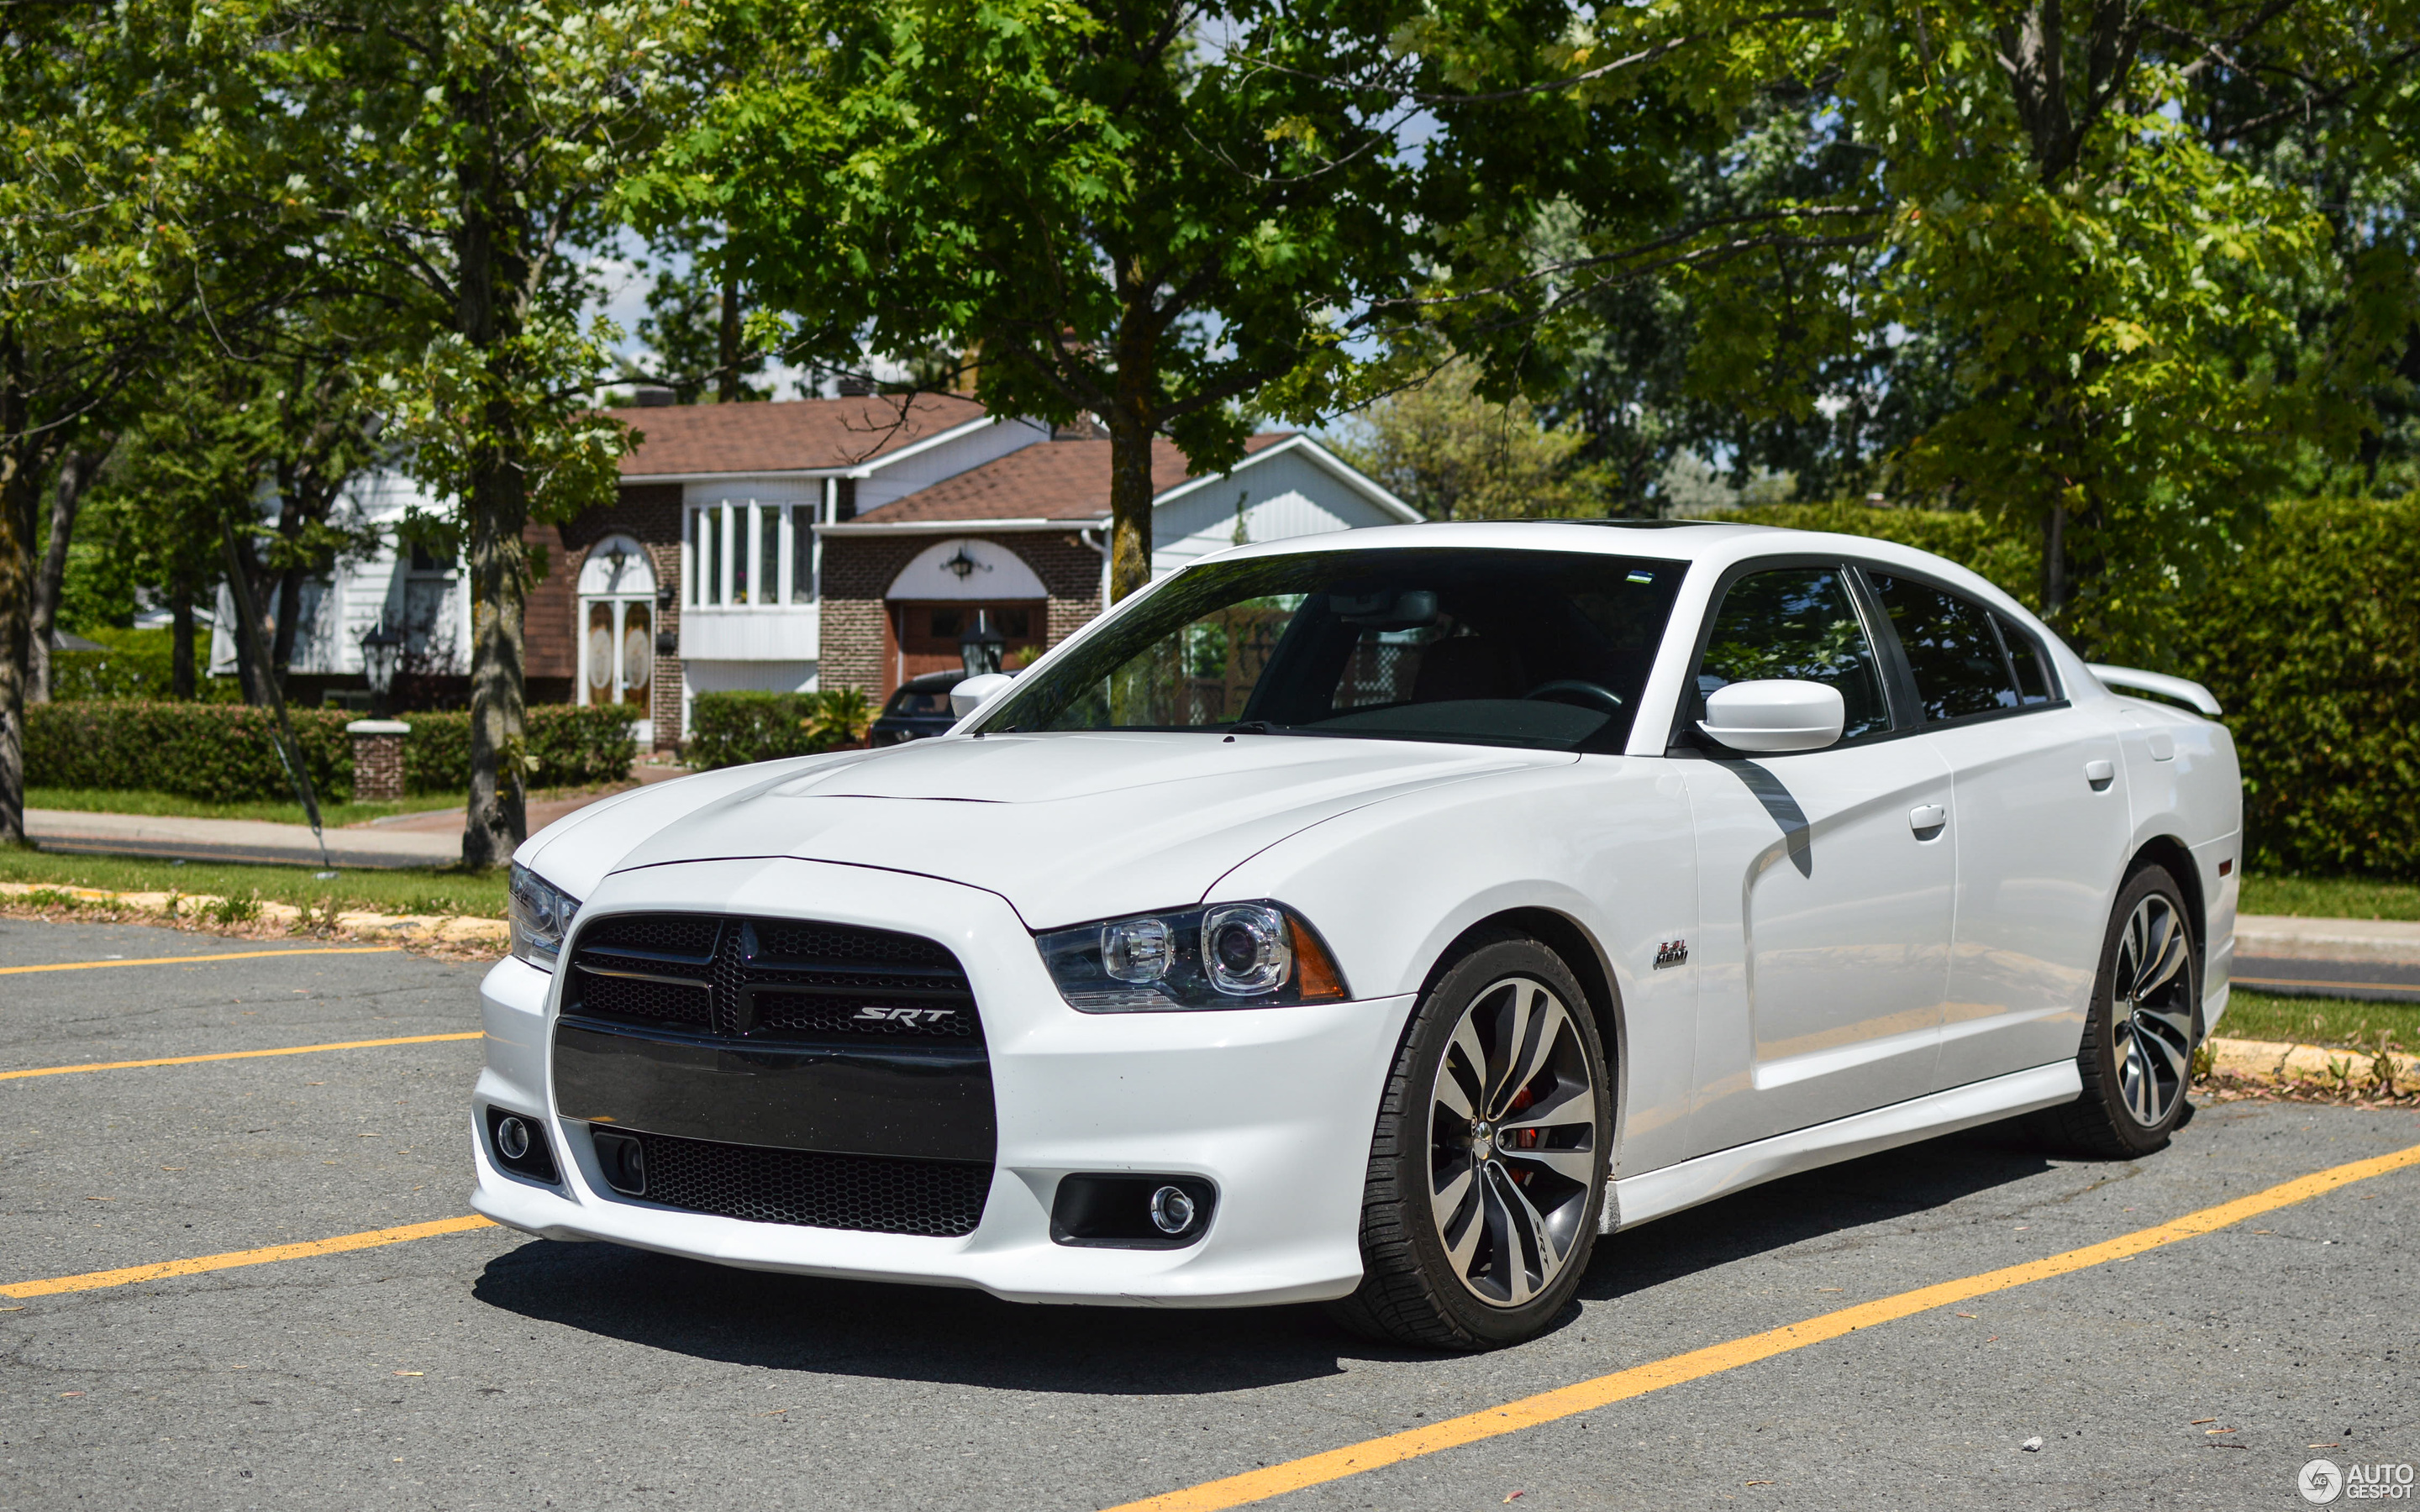 rims dodge and original photos rt with boygohard ideas info specs images charger on modification at